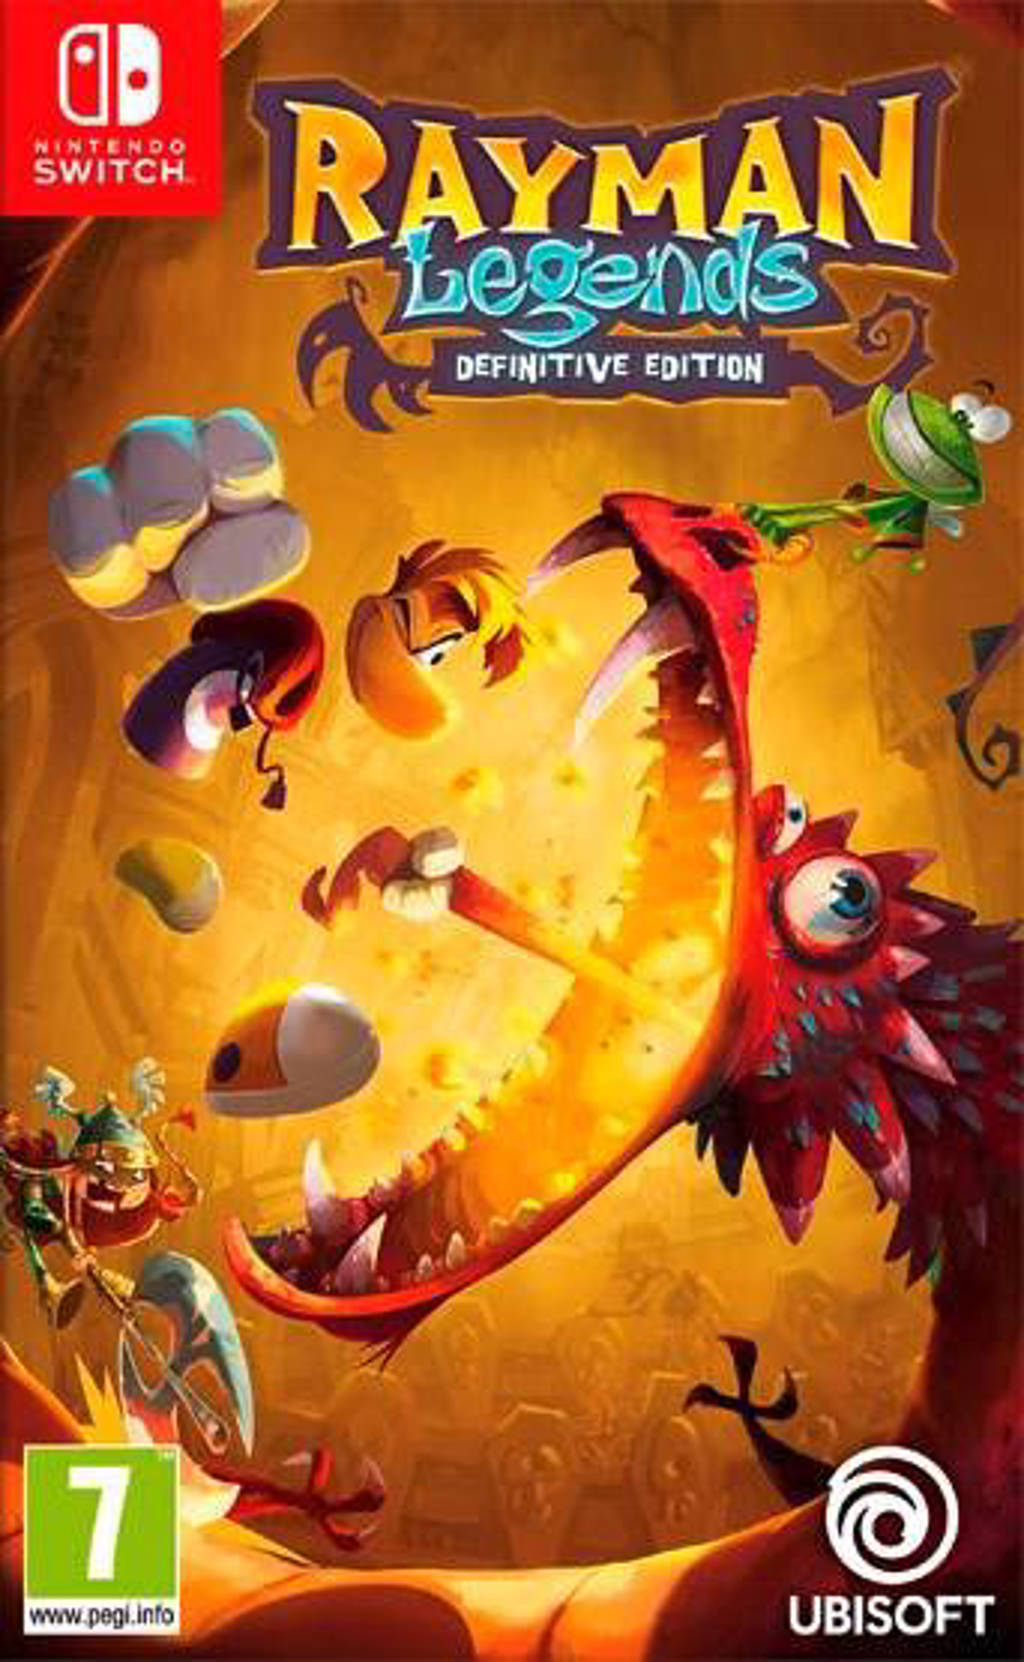 Rayman legends - Definitive edition (Nintendo Switch)